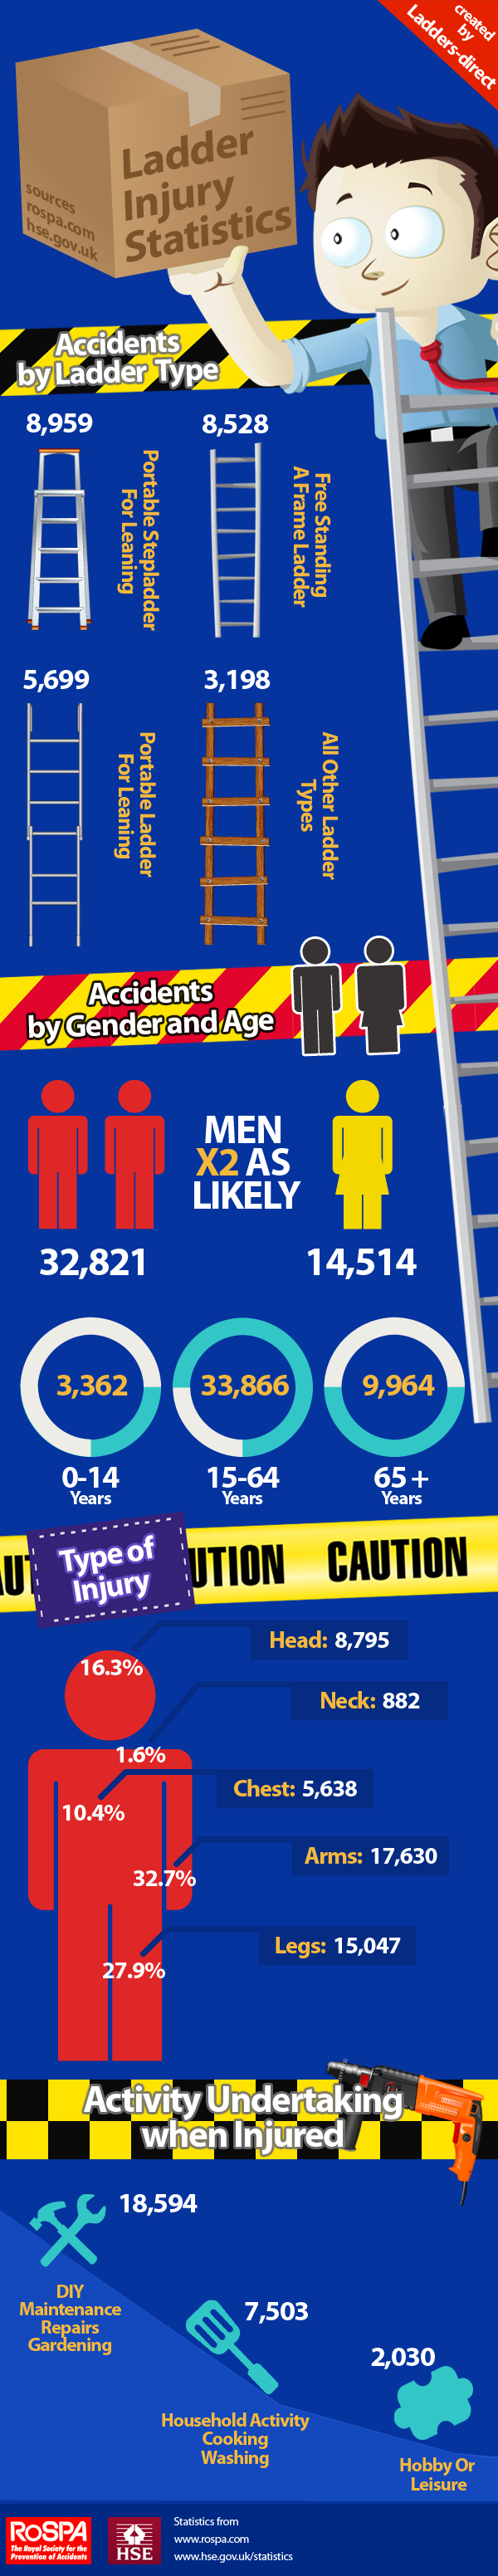 Ladder Injury statistics in the UK